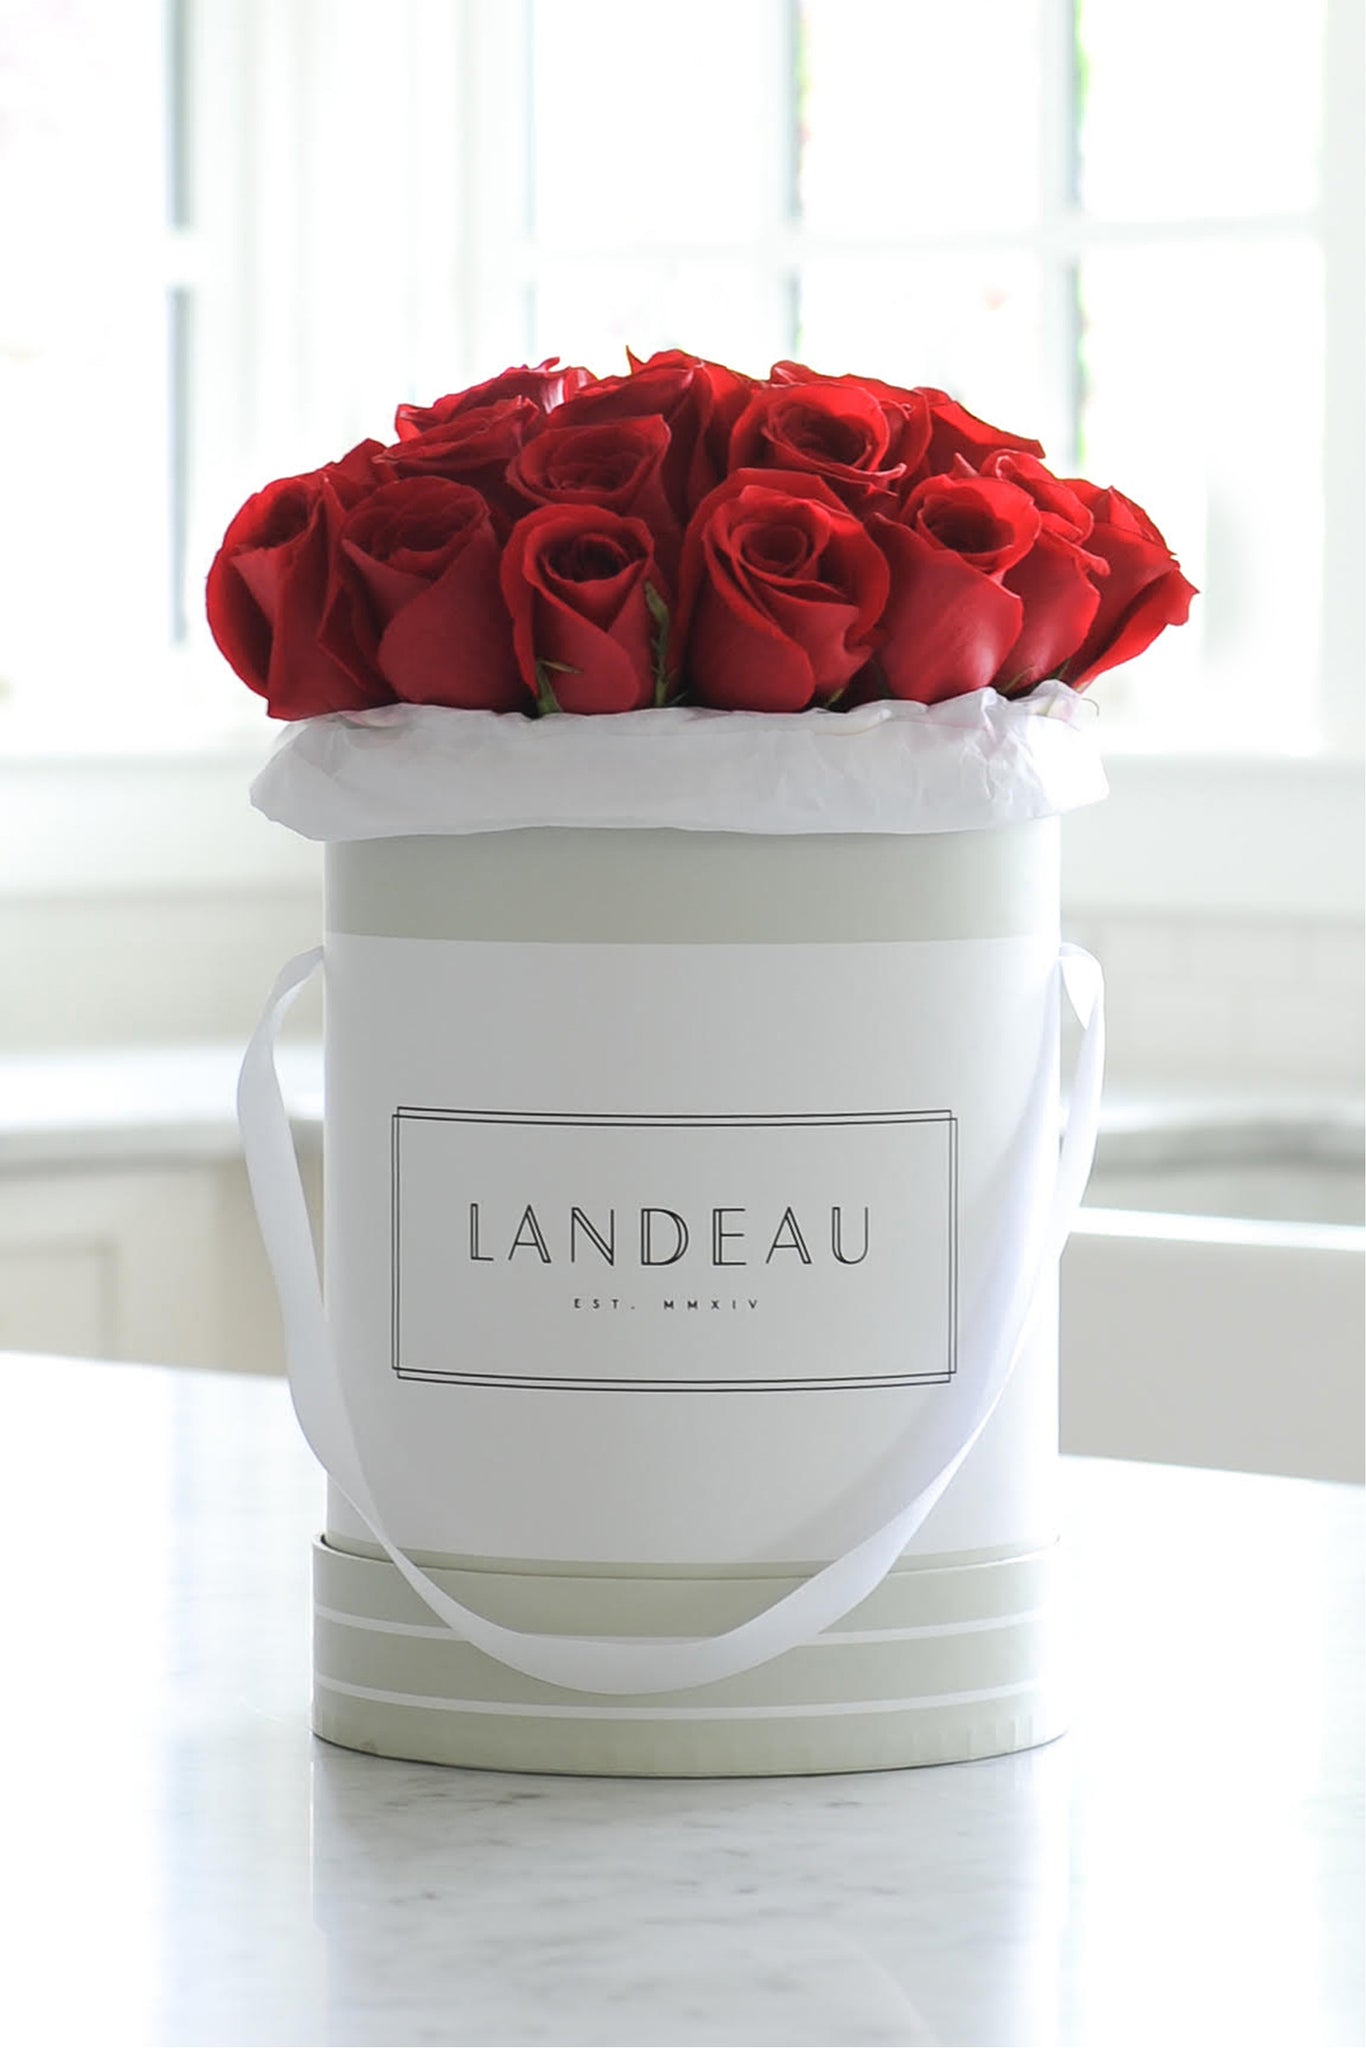 Red Roses available for luxury flower delivery in a bouquet in Chicago, New York City, Portland, Los Angeles, Paris, and San Francisco. 25 Red Roses in a box delivered to celebrate your anniversary or birthday